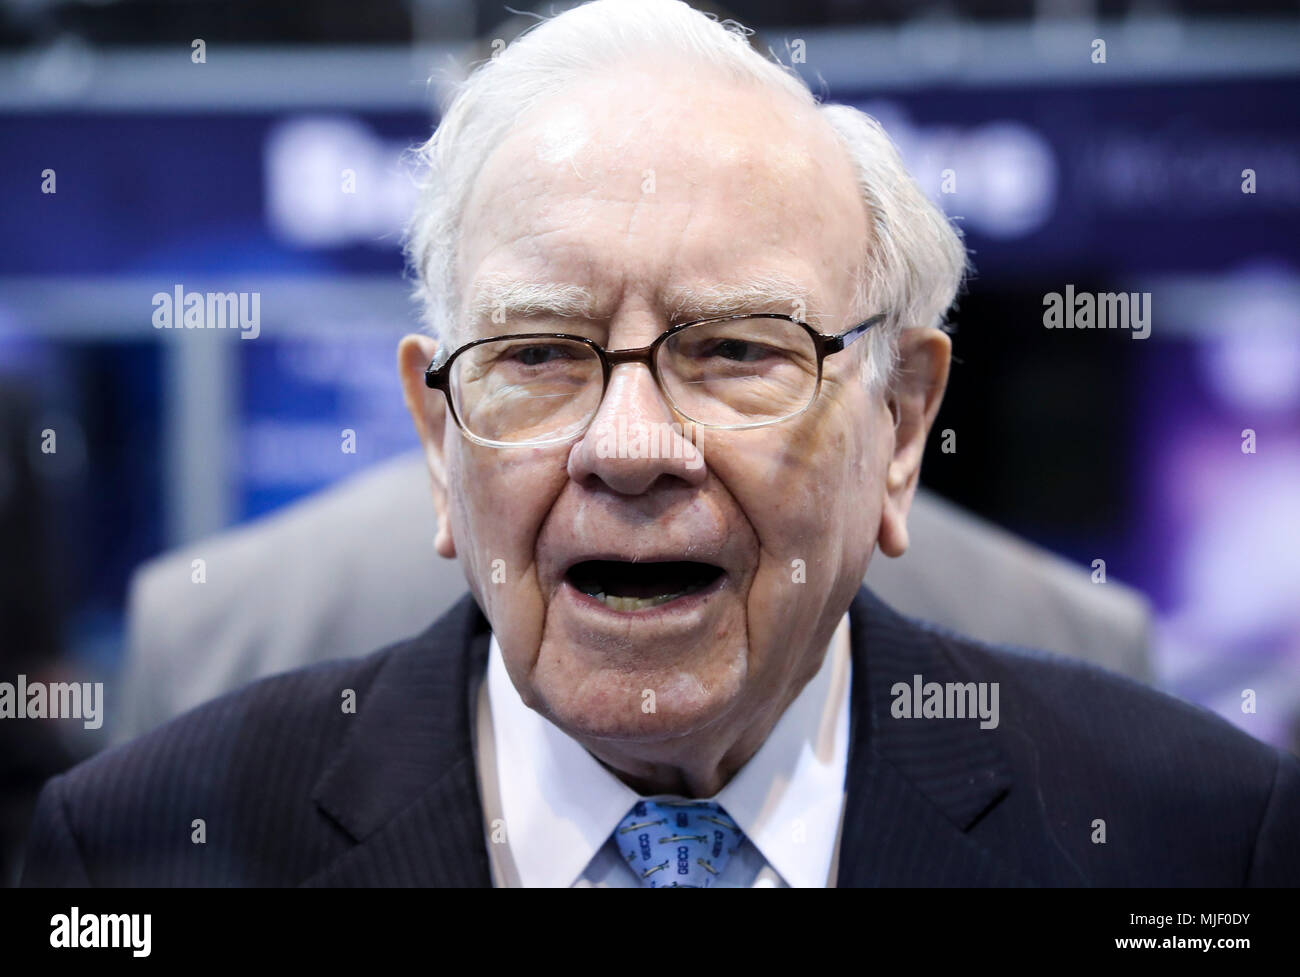 Omaha, USA. 5th May, 2018. U.S. billionaire investor Warren Buffett, chairman and CEO of Berkshire Hathaway, visits an exhibition on his invested companies before the Berkshire Hathaway's annual shareholders meeting in Omaha, Nebraska, the United States, on May 5, 2018. Berkshire Hathaway held its 2018 shareholders meeting on Saturday, attended by tens of thousands of people from all over the world. Credit: Wang Ying/Xinhua/Alamy Live News Stock Photo